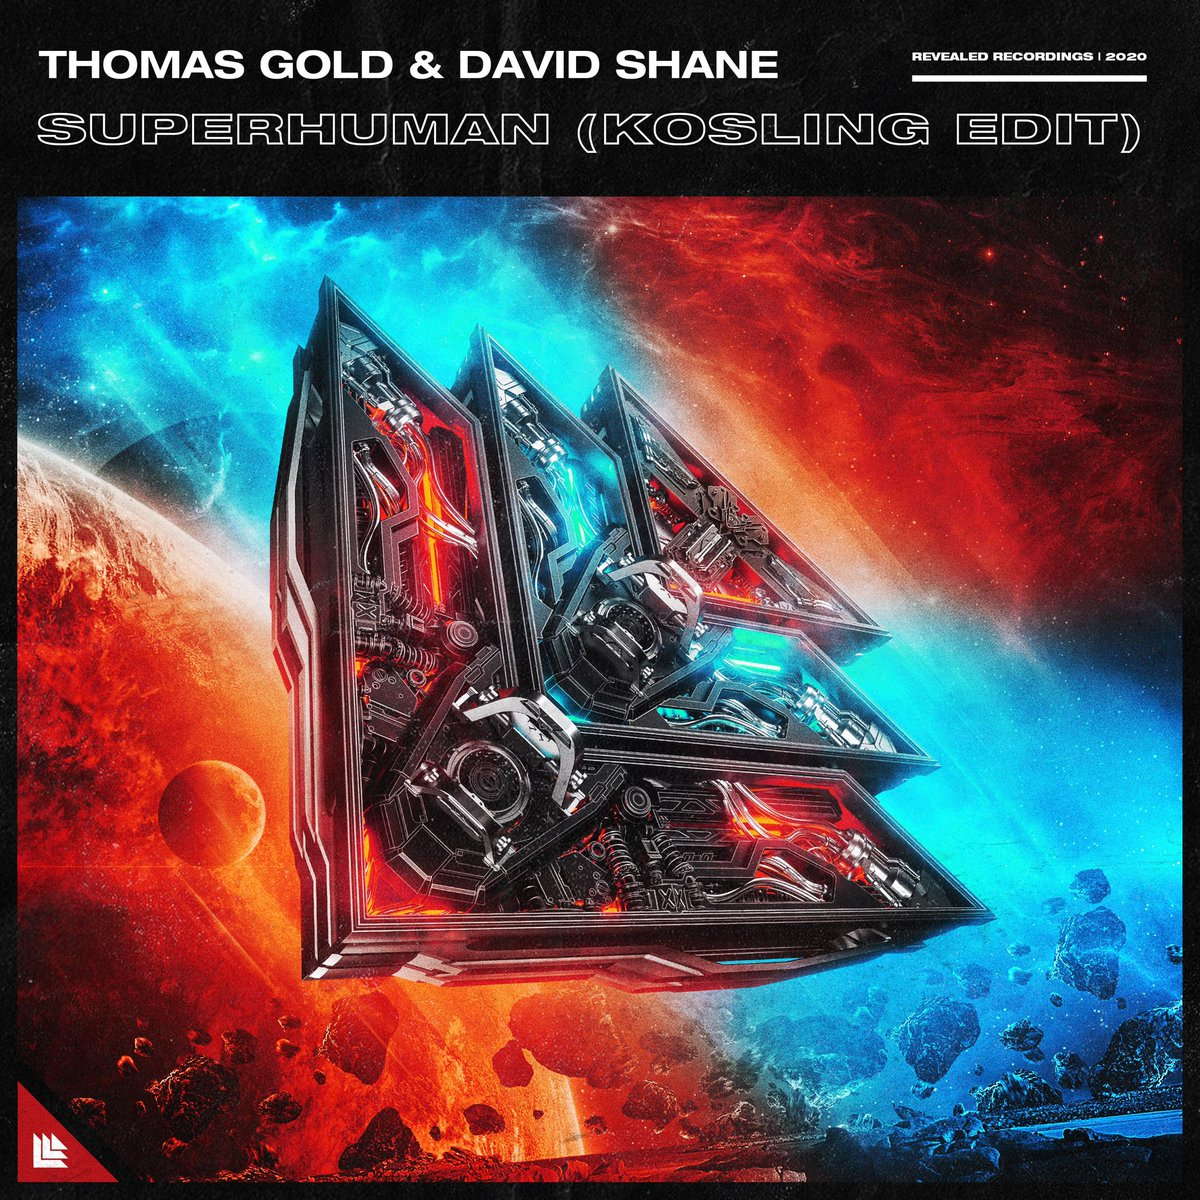 """The """"Escape"""" follow up is here! Superhuman with @thomasgold & @DavidShaneMusic is OUT NOW on @RevealedRec ! 🚀🔥🙌🏽 https://t.co/gIqan9v6rf"""